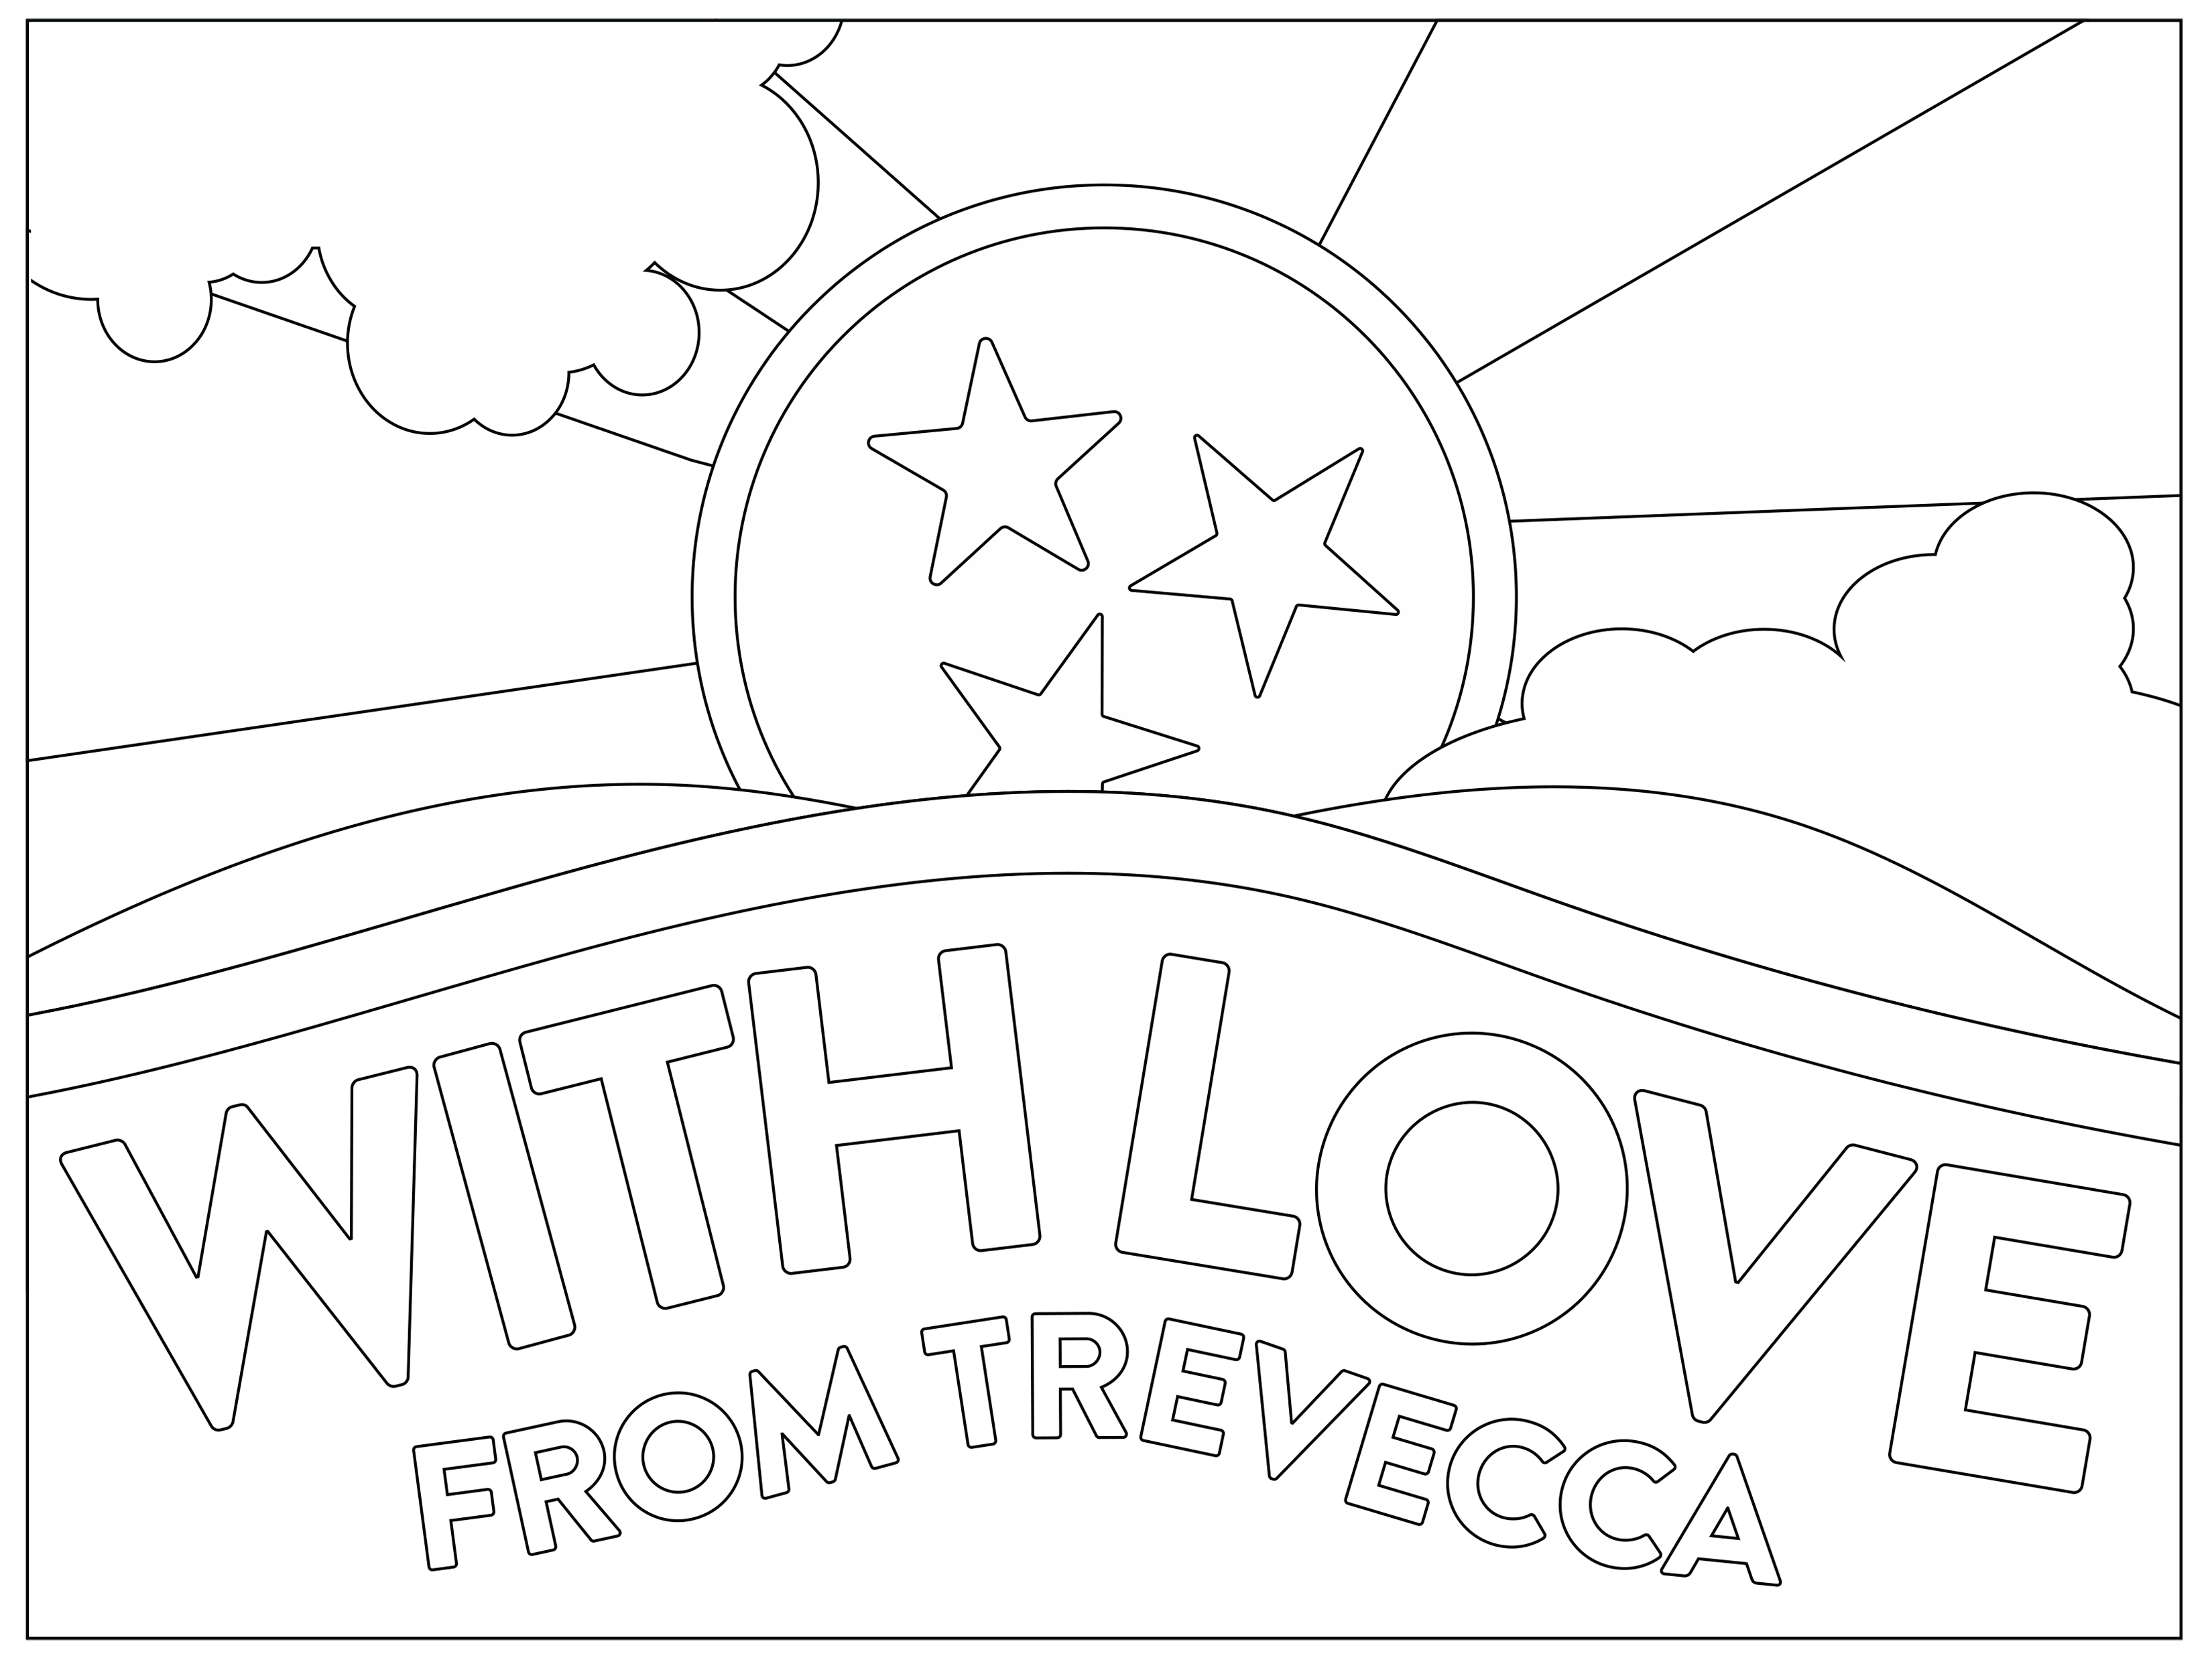 USA-Printables: State of Tennessee Coloring Pages - Tennessee ... | 2483x3300